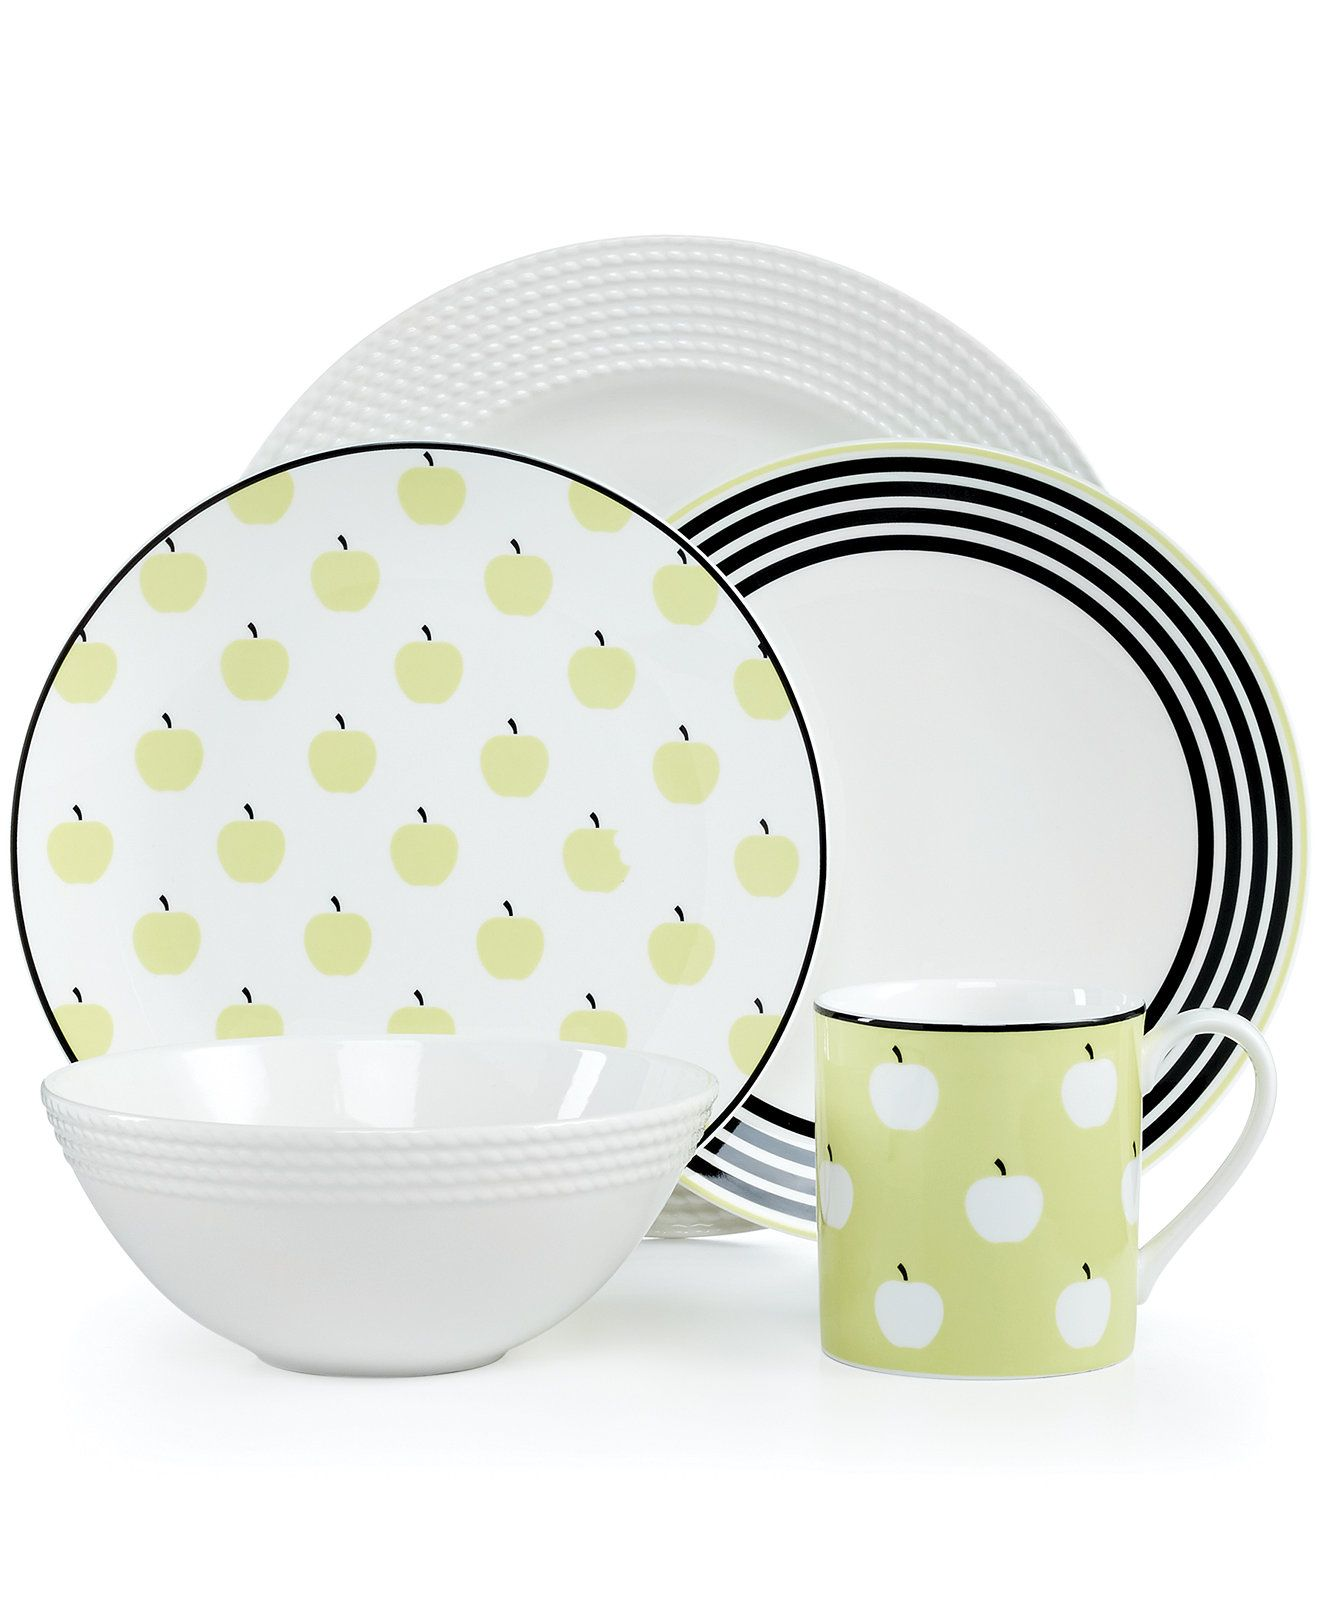 kate spade new york Dinnerware Wickford Dinnerware Collection  sc 1 st  Pinterest & kate spade new york Dinnerware Wickford Dinnerware Collection ...